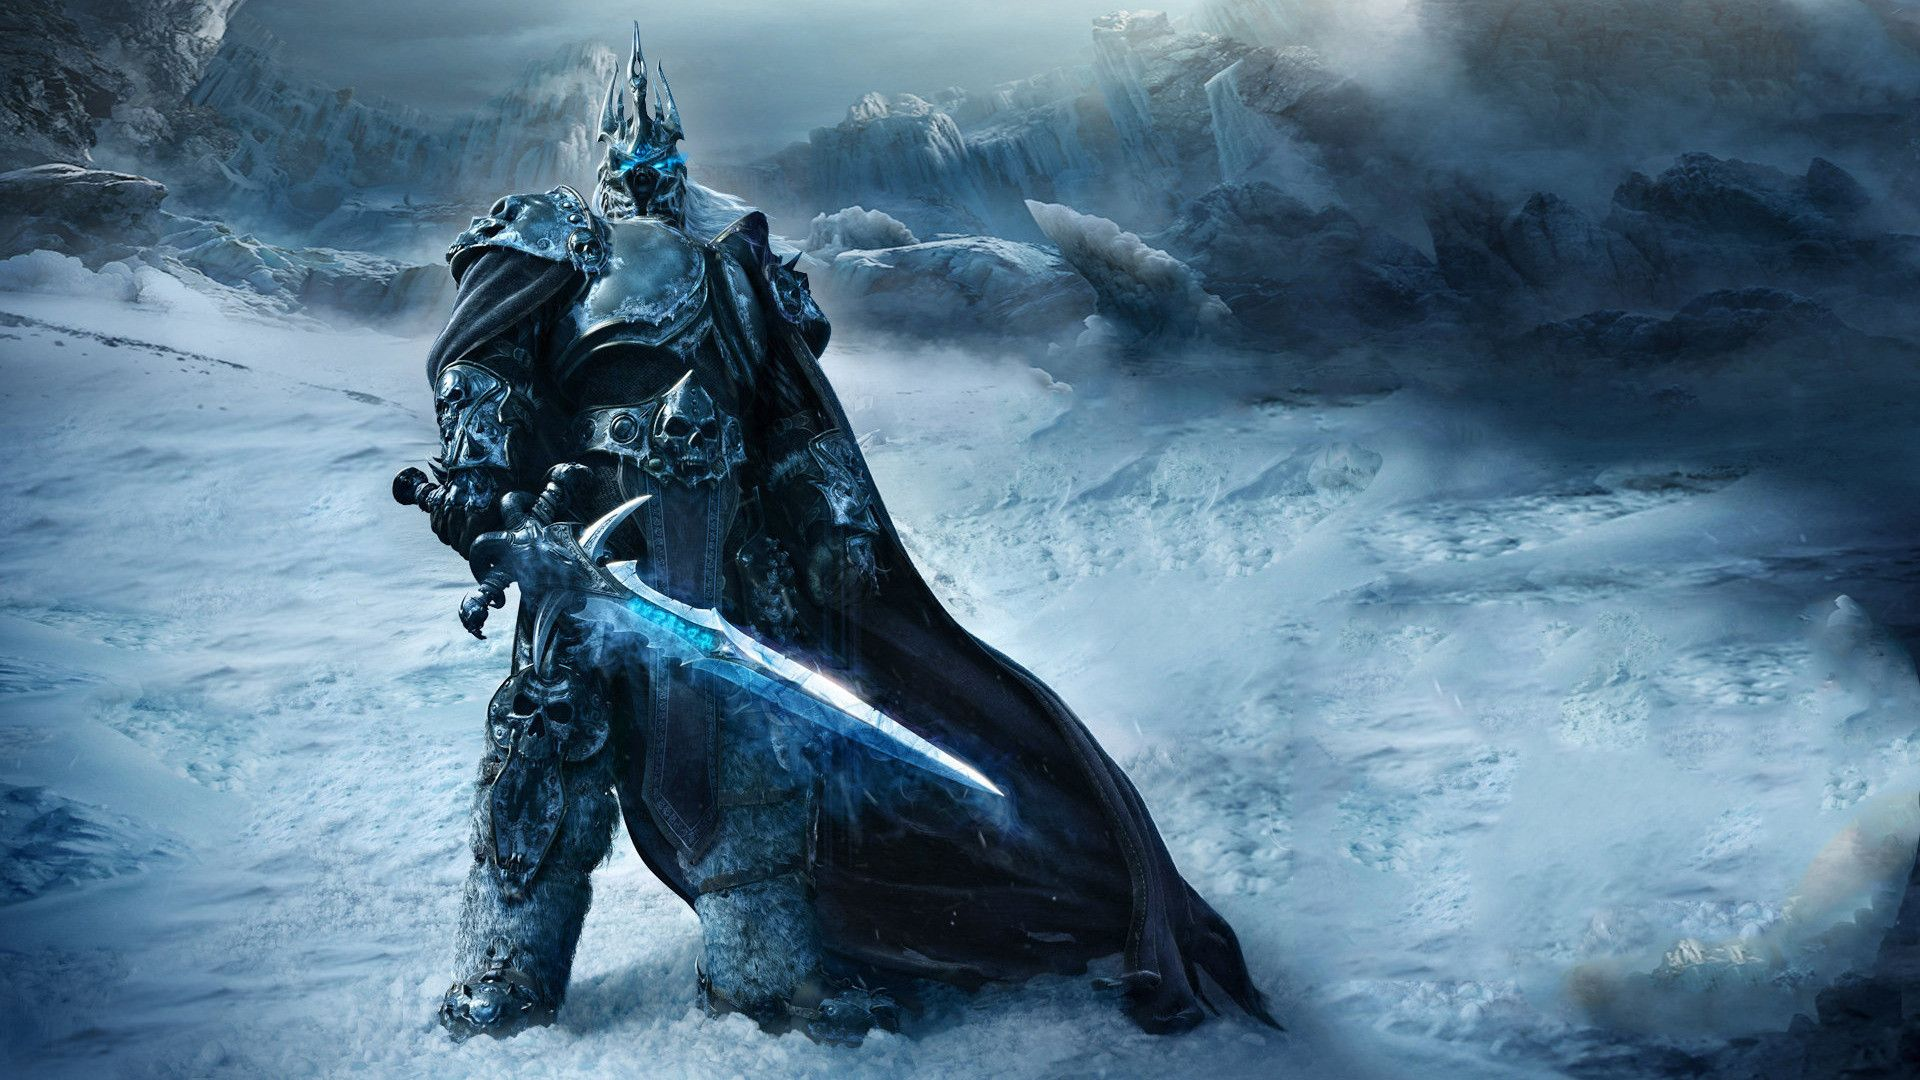 Wrath of the Lich King World of Warcraft. Video games